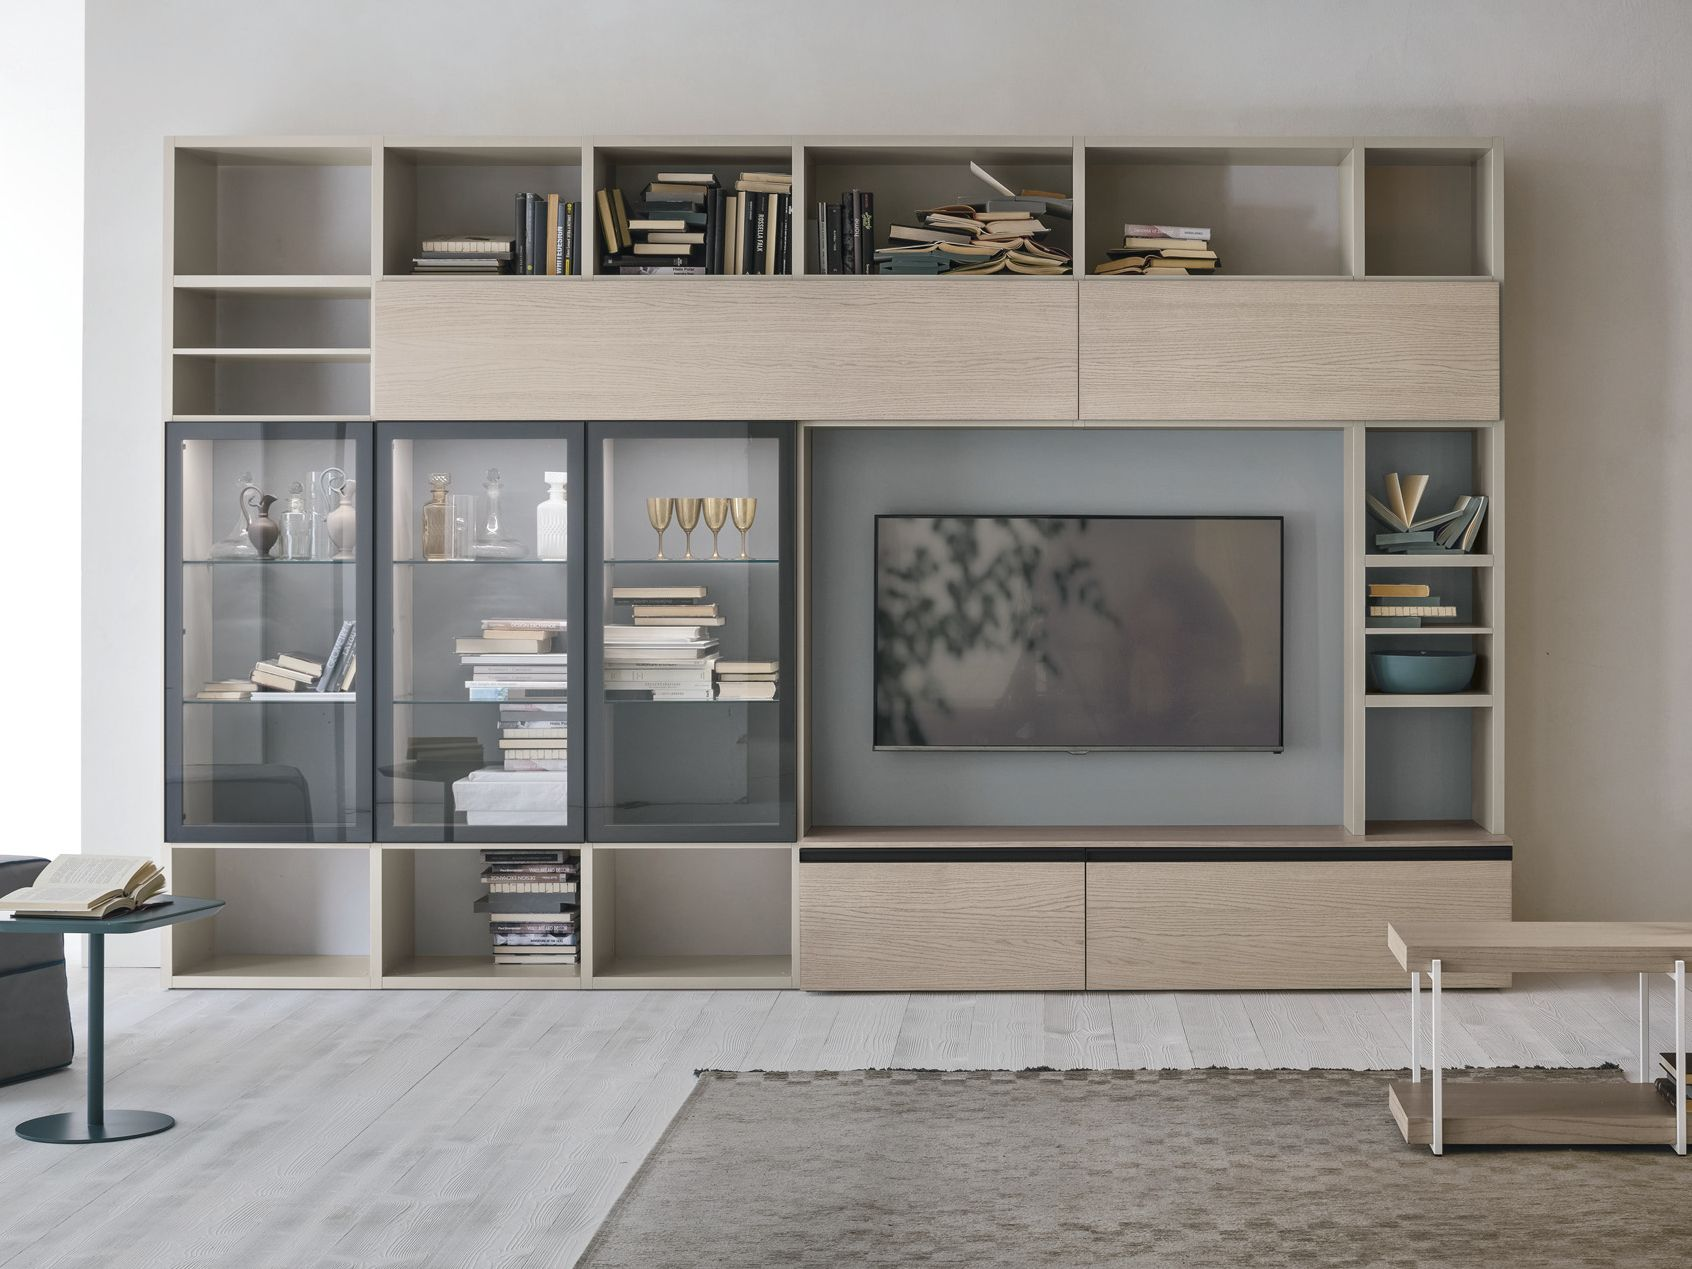 Sectional Storage Wall Unit A116 By Gruppo Tomasella Living Room Wall Units Wall Unit Wall Storage Unit